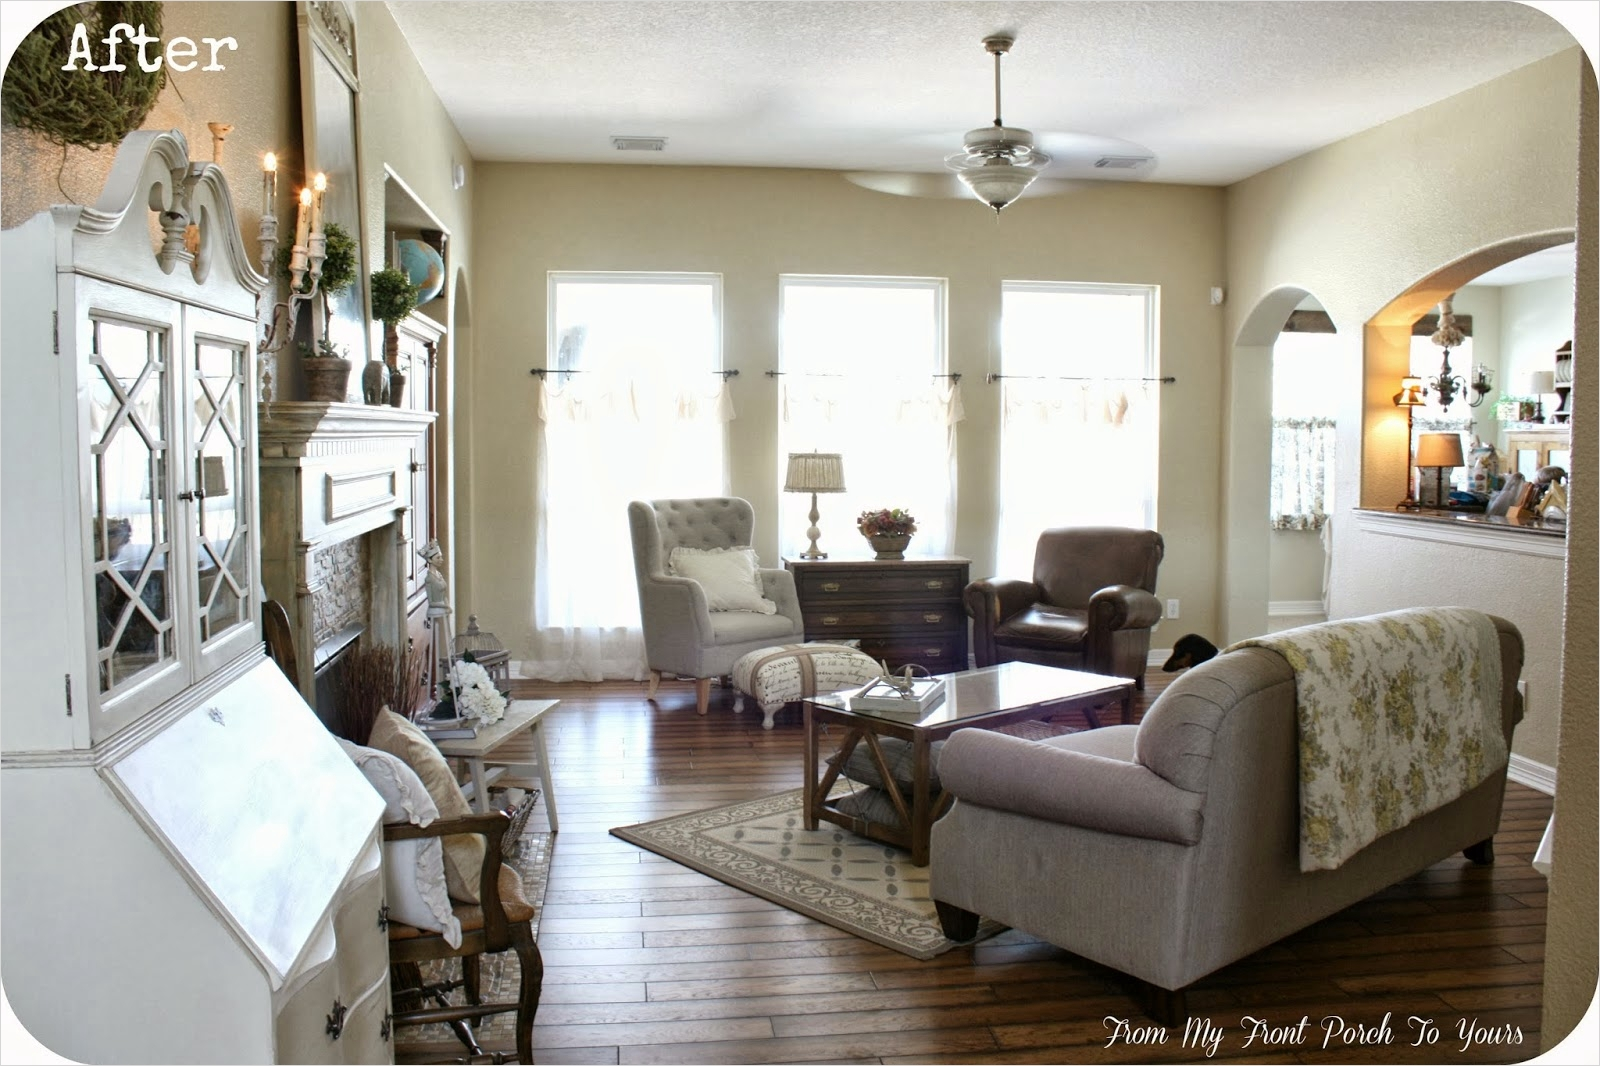 42 Cozy Country Farmhouse Living Room 95 From My Front Porch to Yours French Farmhouse Living Room Reveal 3